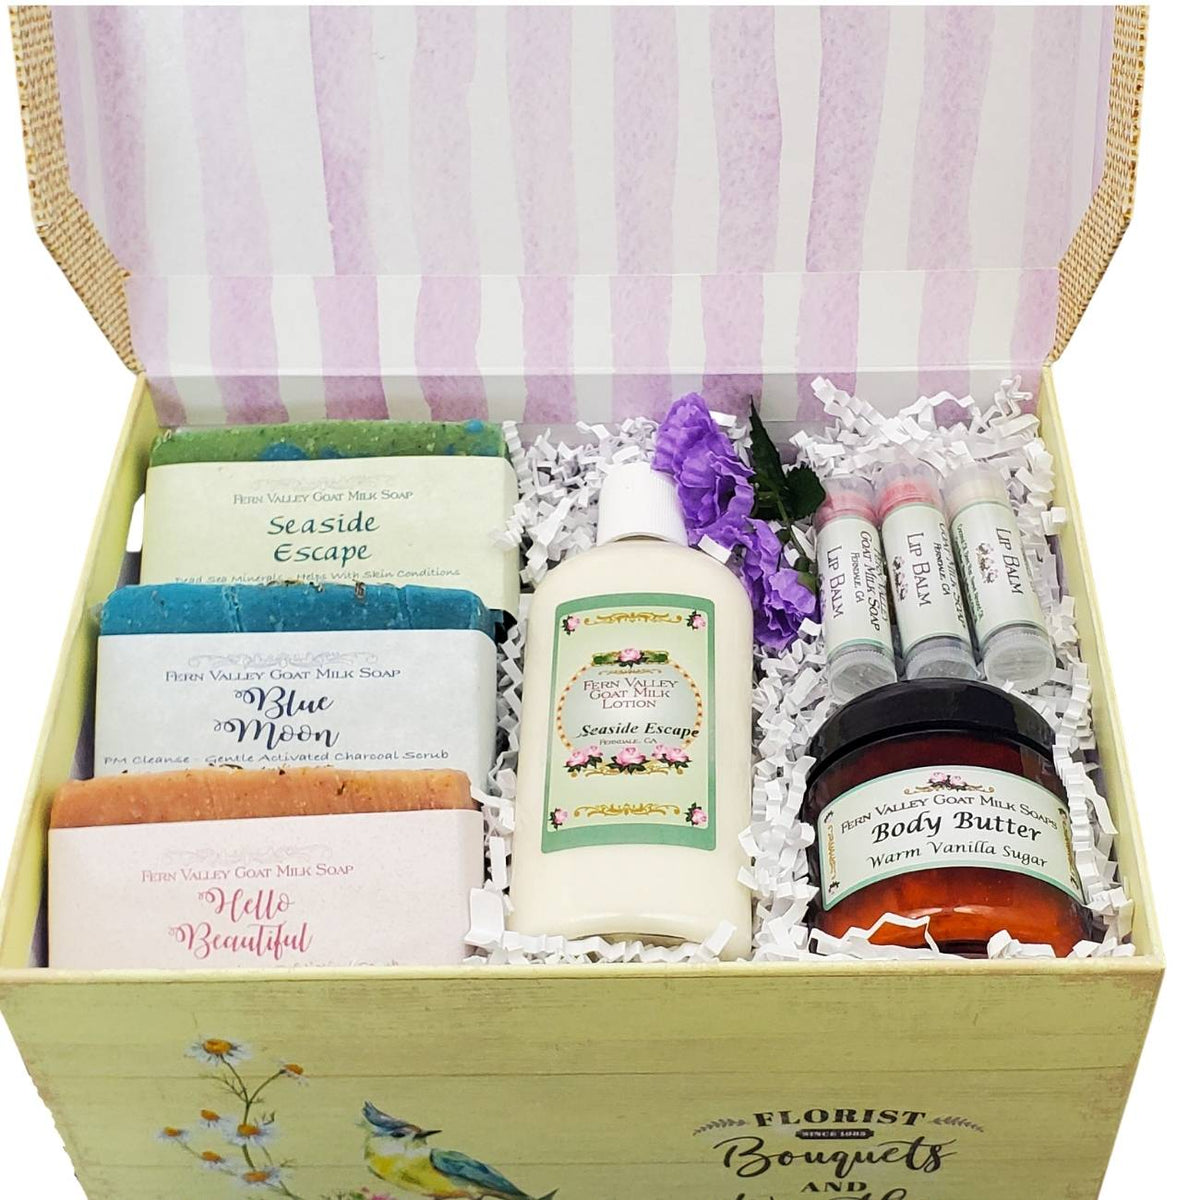 Joyful Gift Box for Her | Handmade Goat Milk Soaps and Lotion